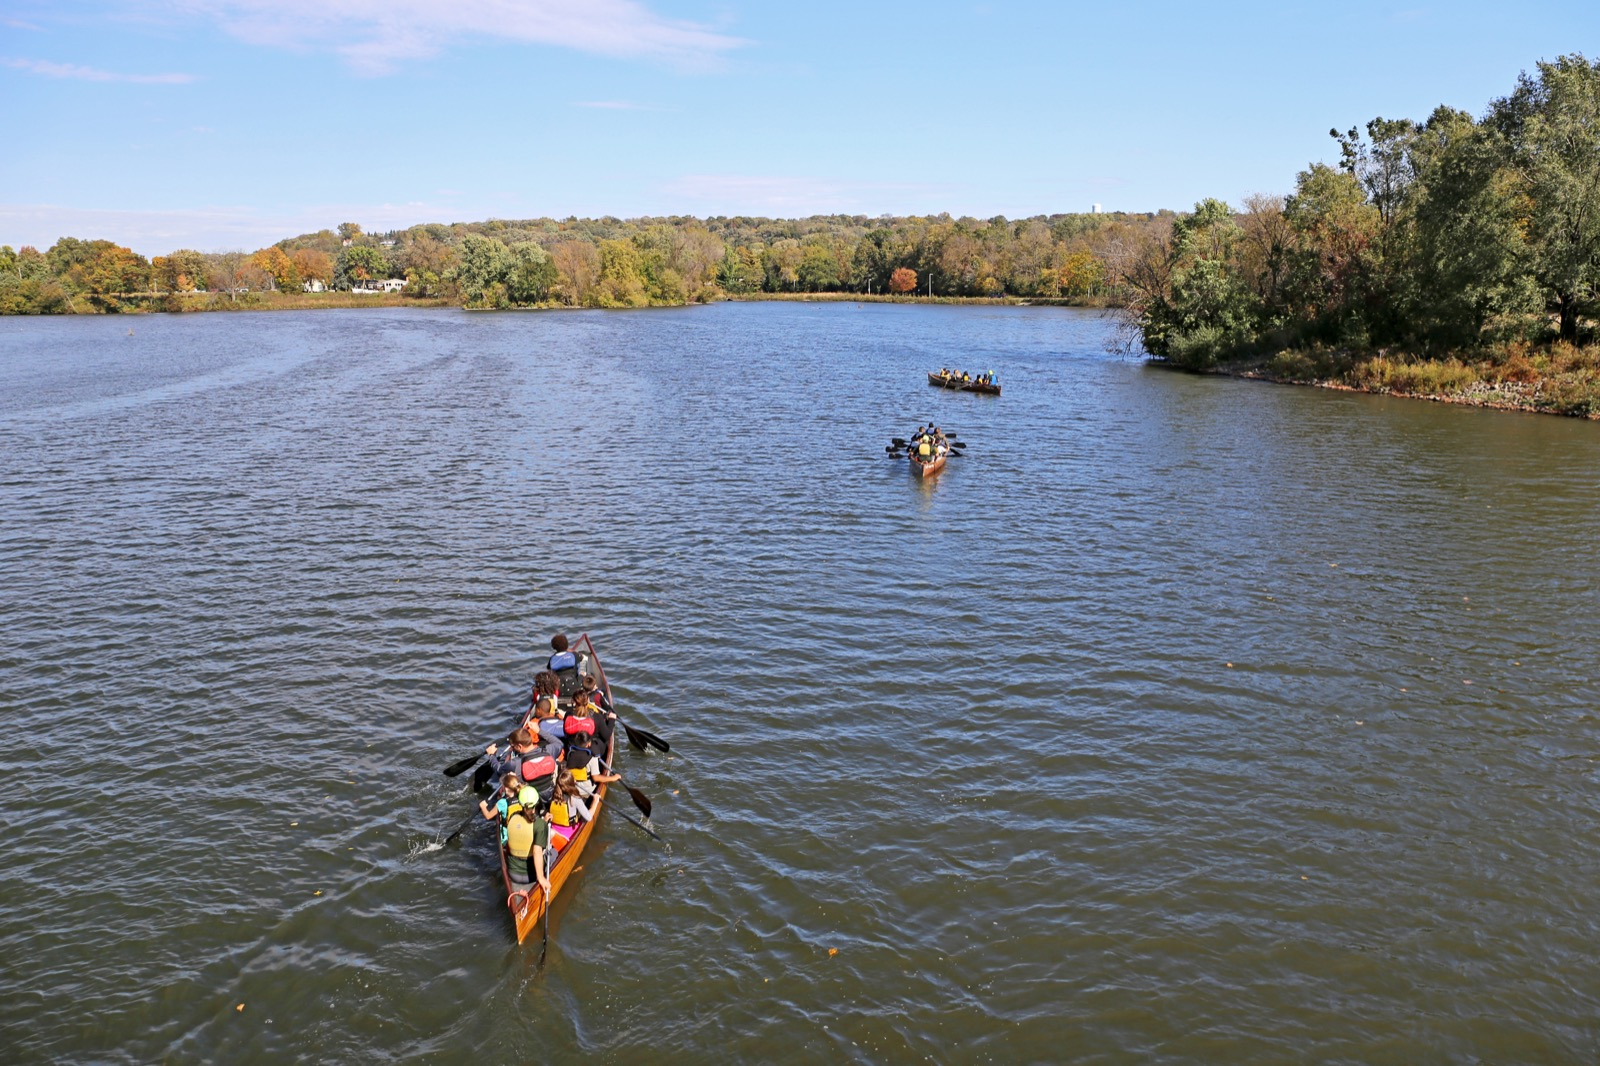 Voyageur canoes on the water